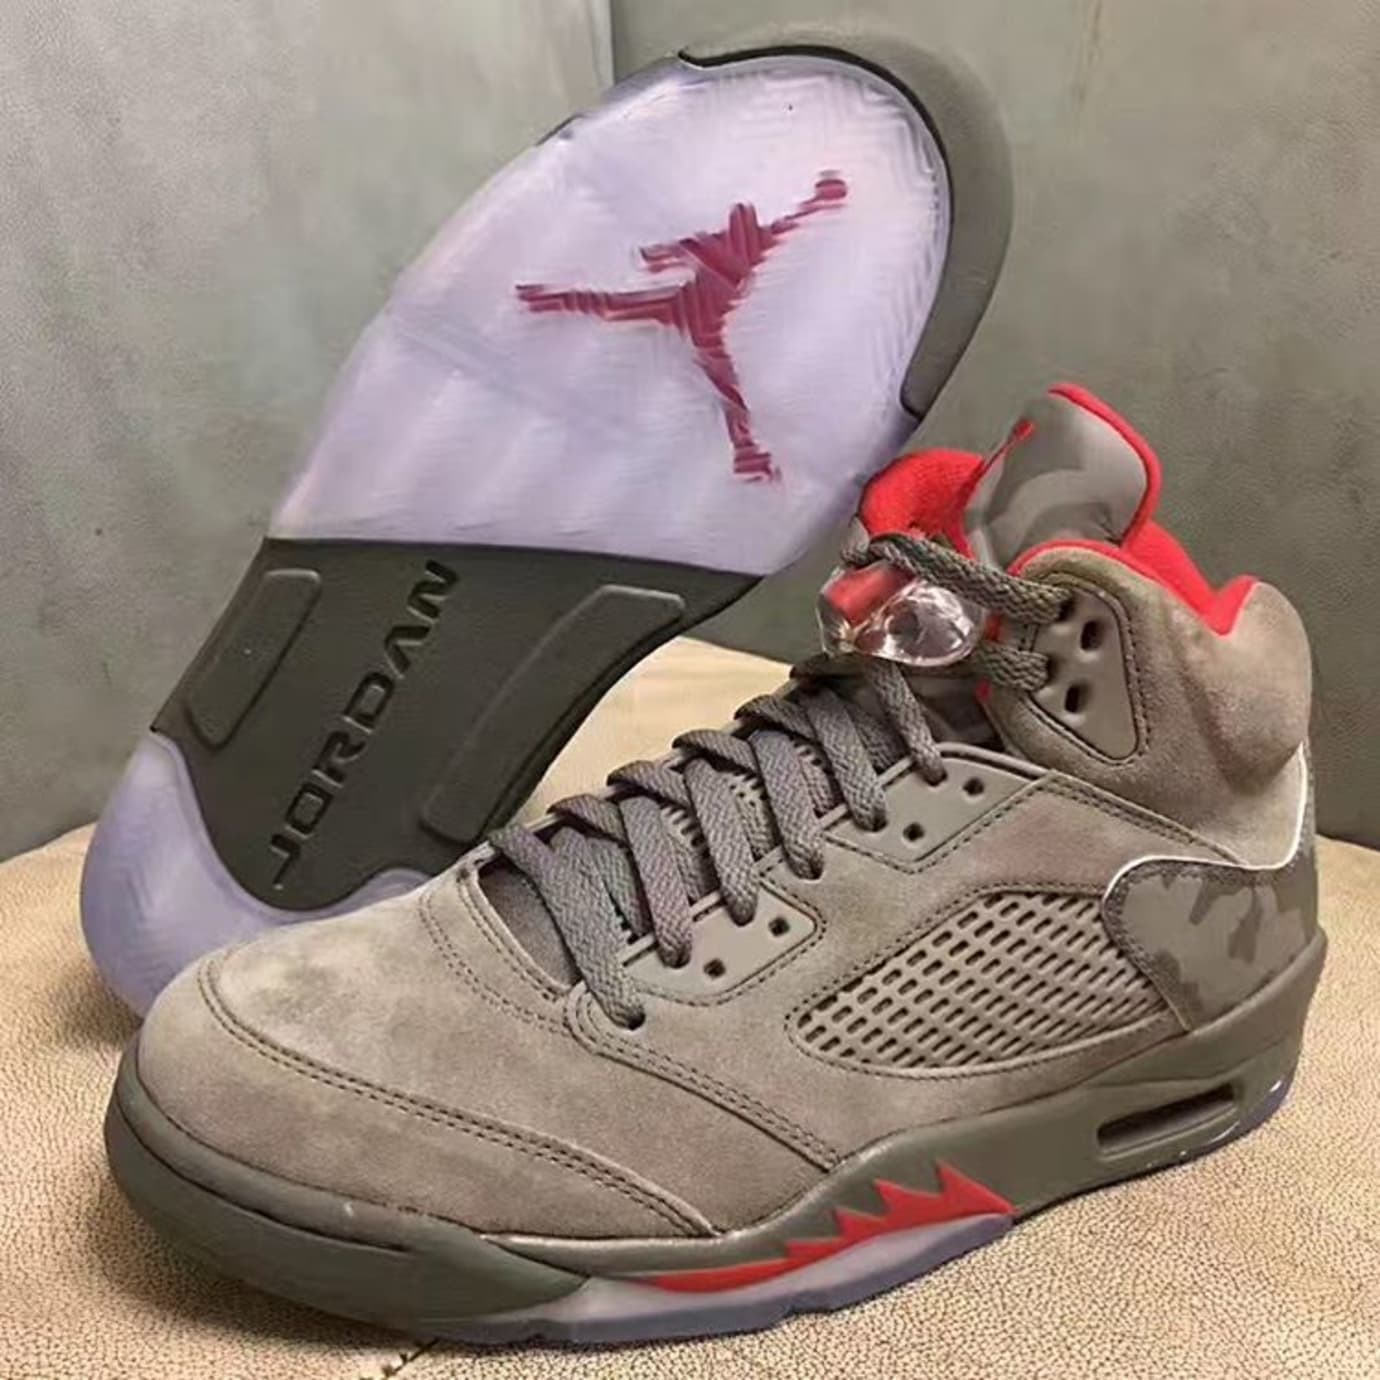 new style 577b0 50339 Air Jordan 5 Camo 2017 Release Date   Sole Collector